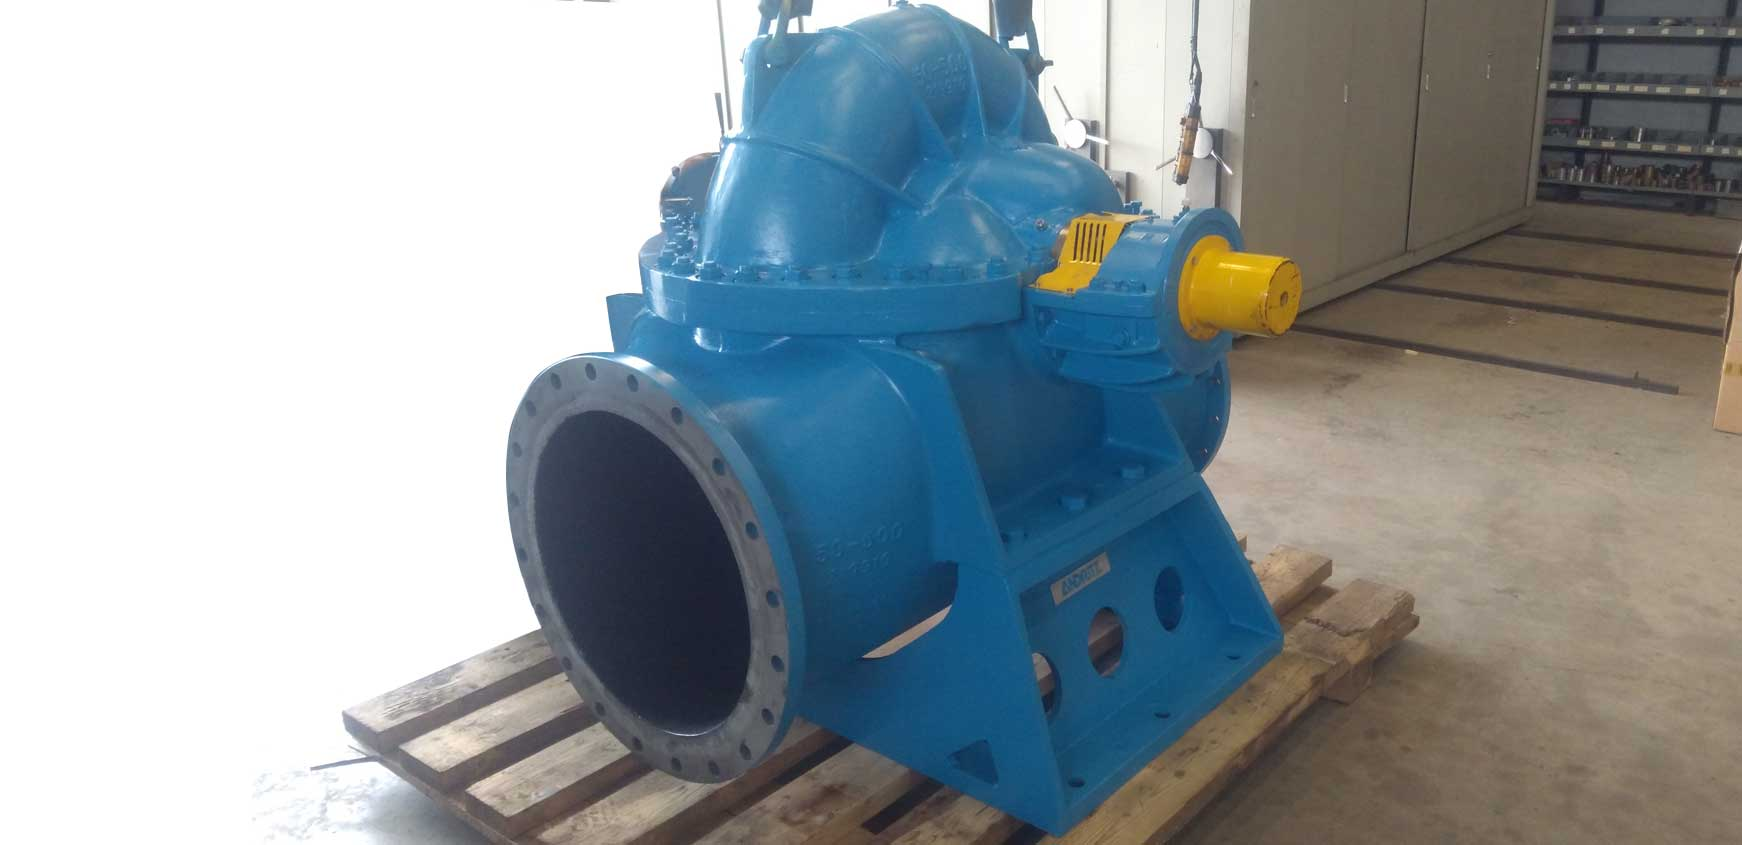 Andriz pump repair